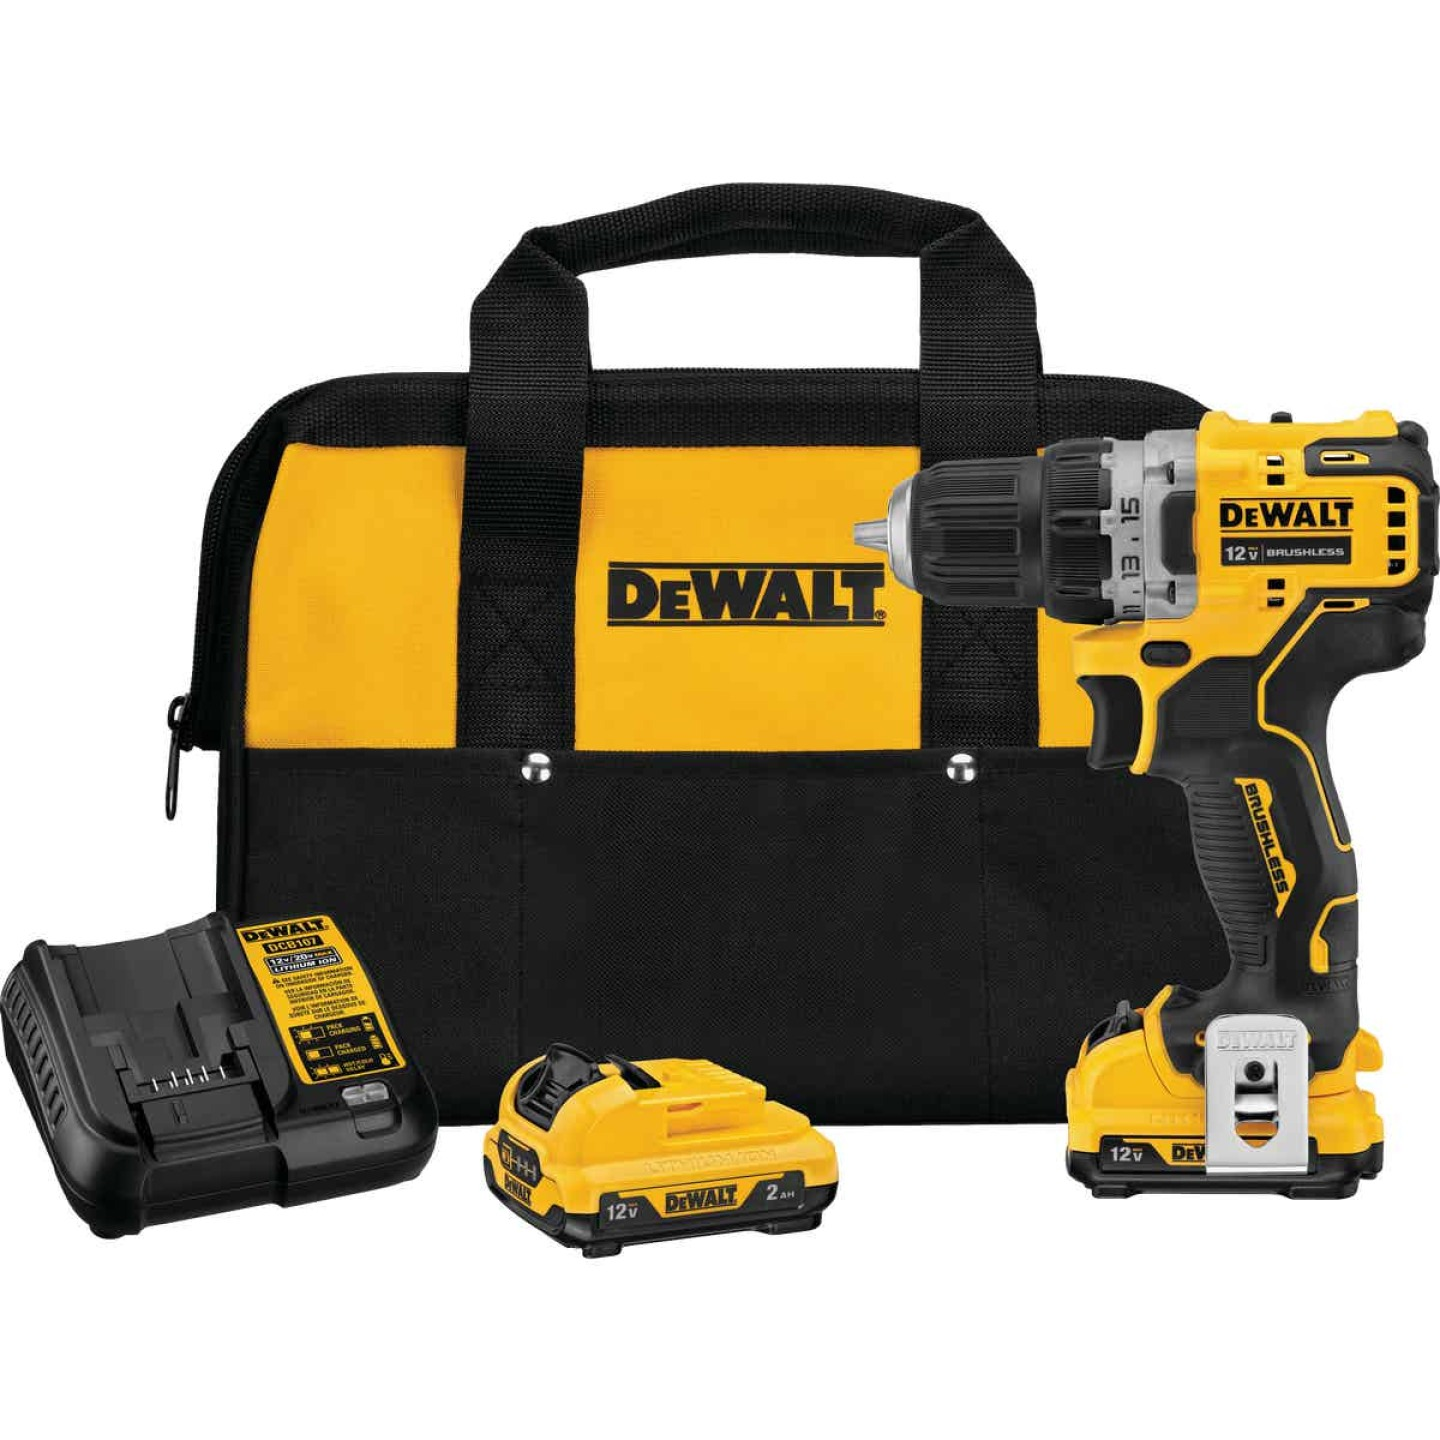 DeWalt XTREME 12 Volt MAX XR Lithium-Ion 3/8 In. Brushless Cordless Drill/Driver Kit Image 1